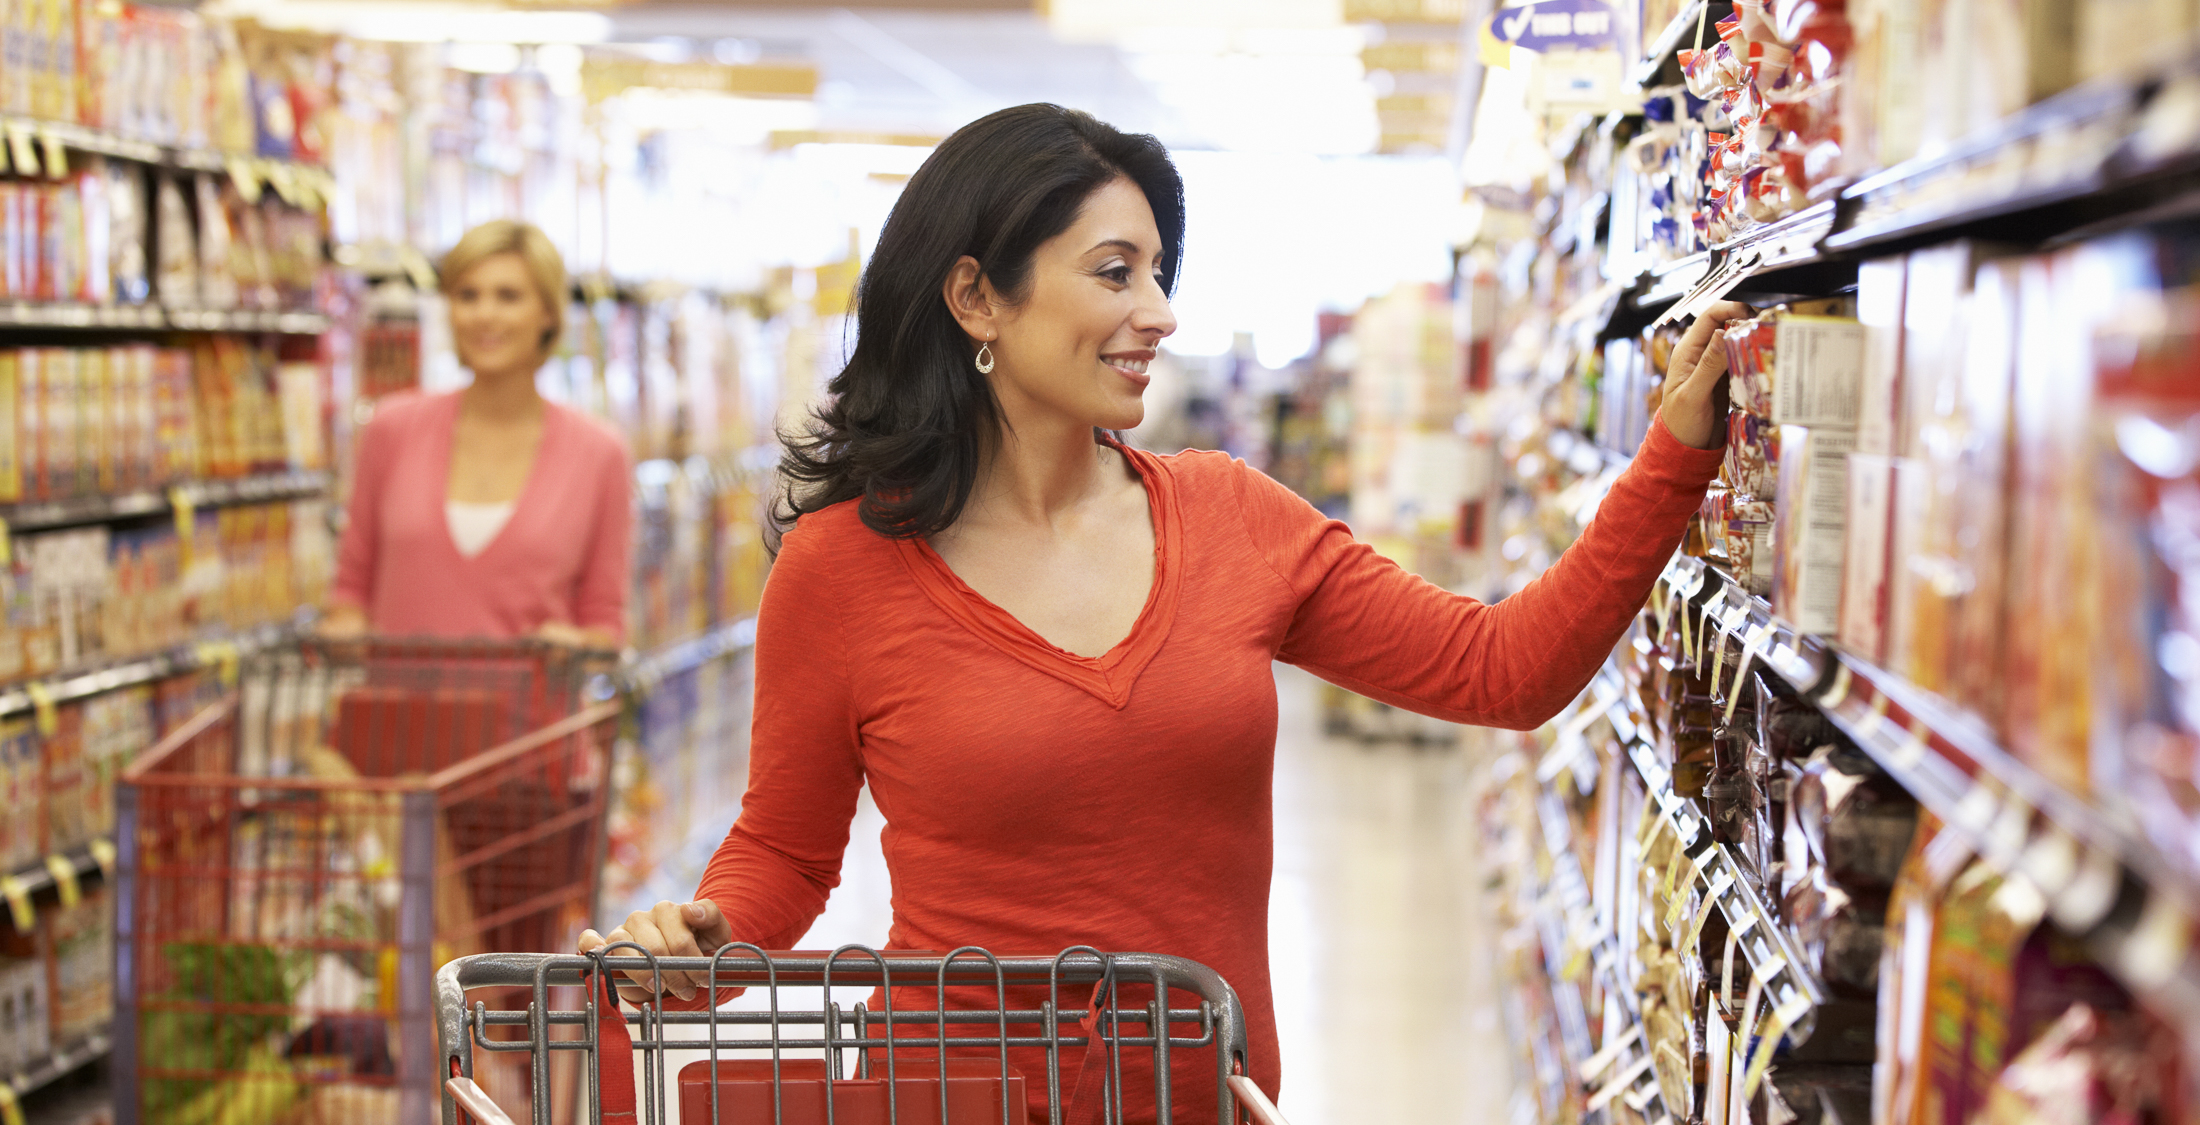 woman with grocery cart grabbing item from shelf